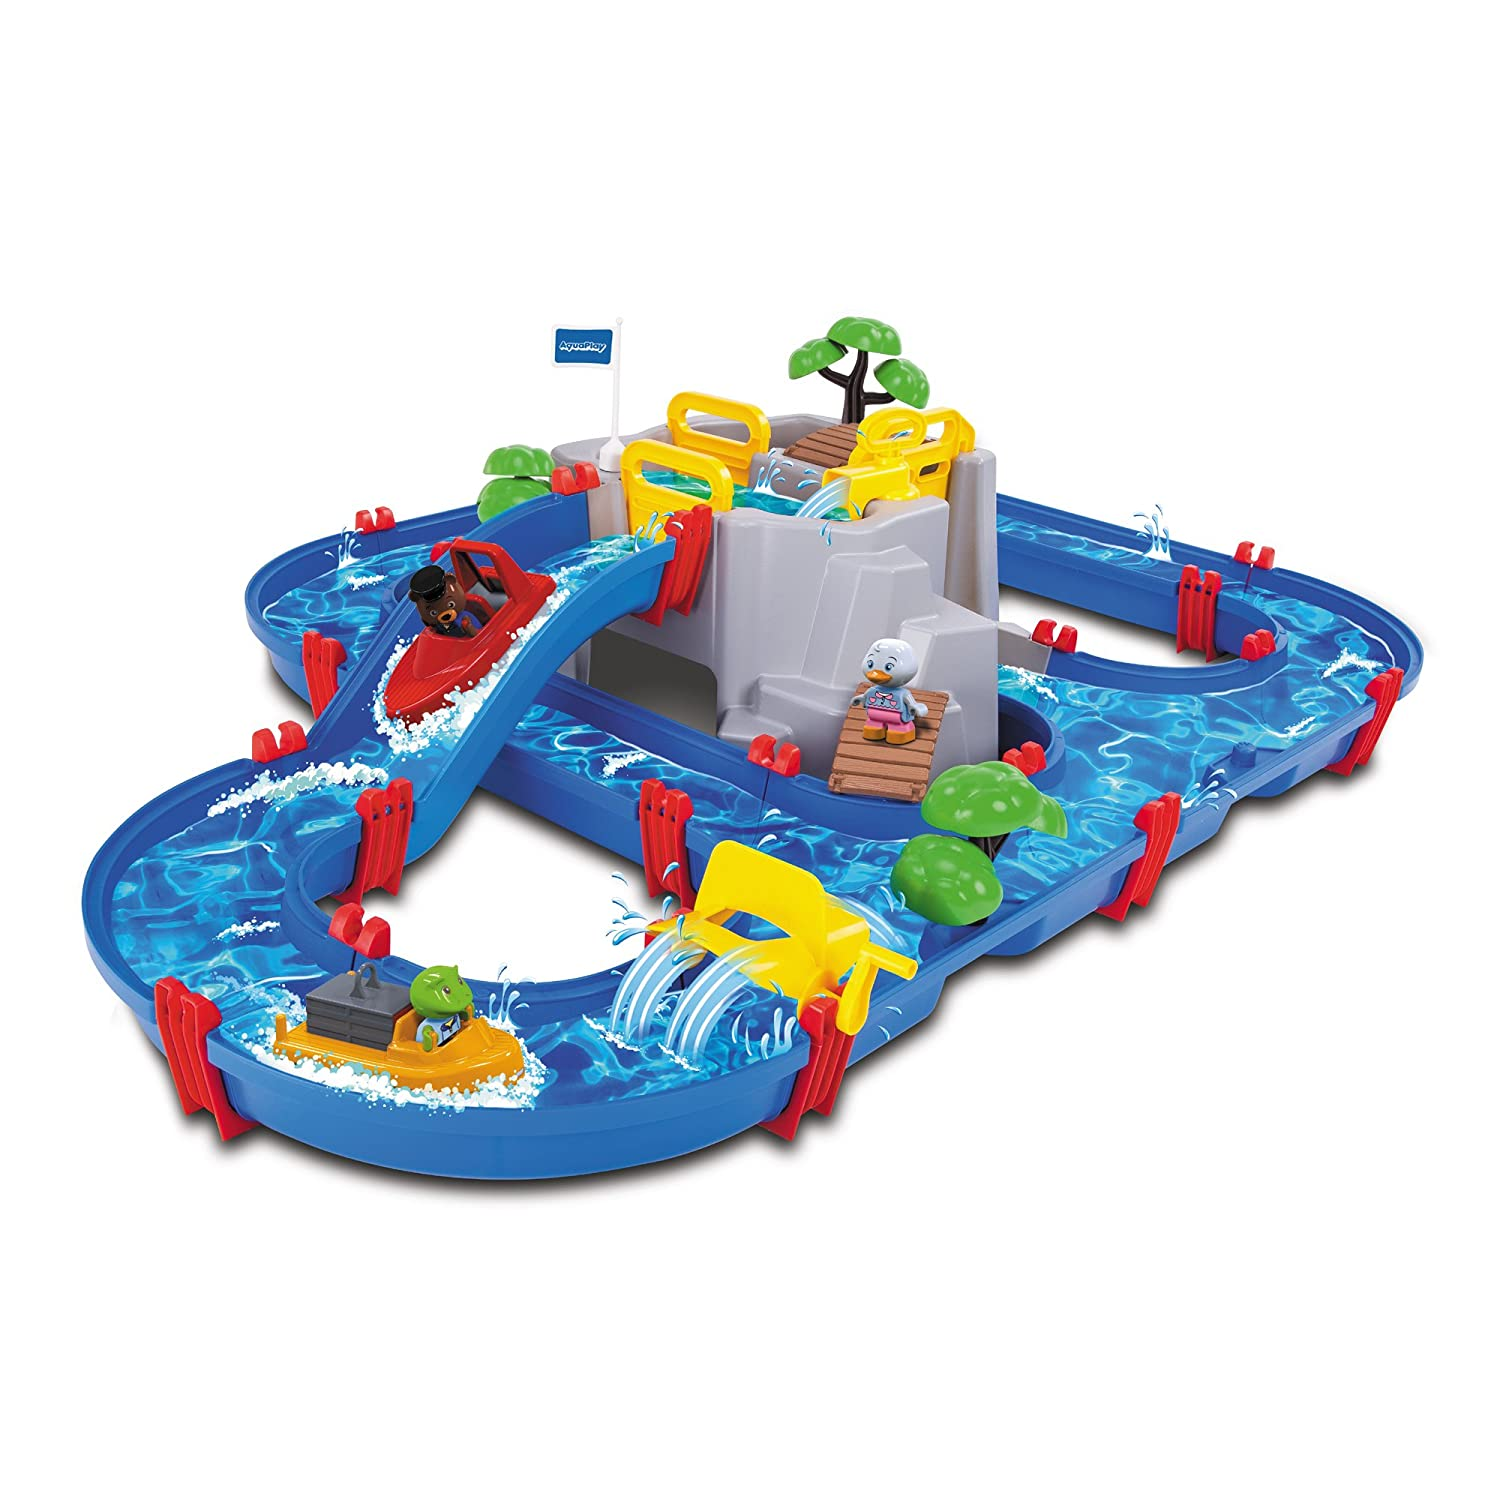 Aquaplay Mountain Lake Waterway Canal System Toy with Lock Gates, Crane, Speed Boat and Animal Figures, Easy To Assemble Water Table